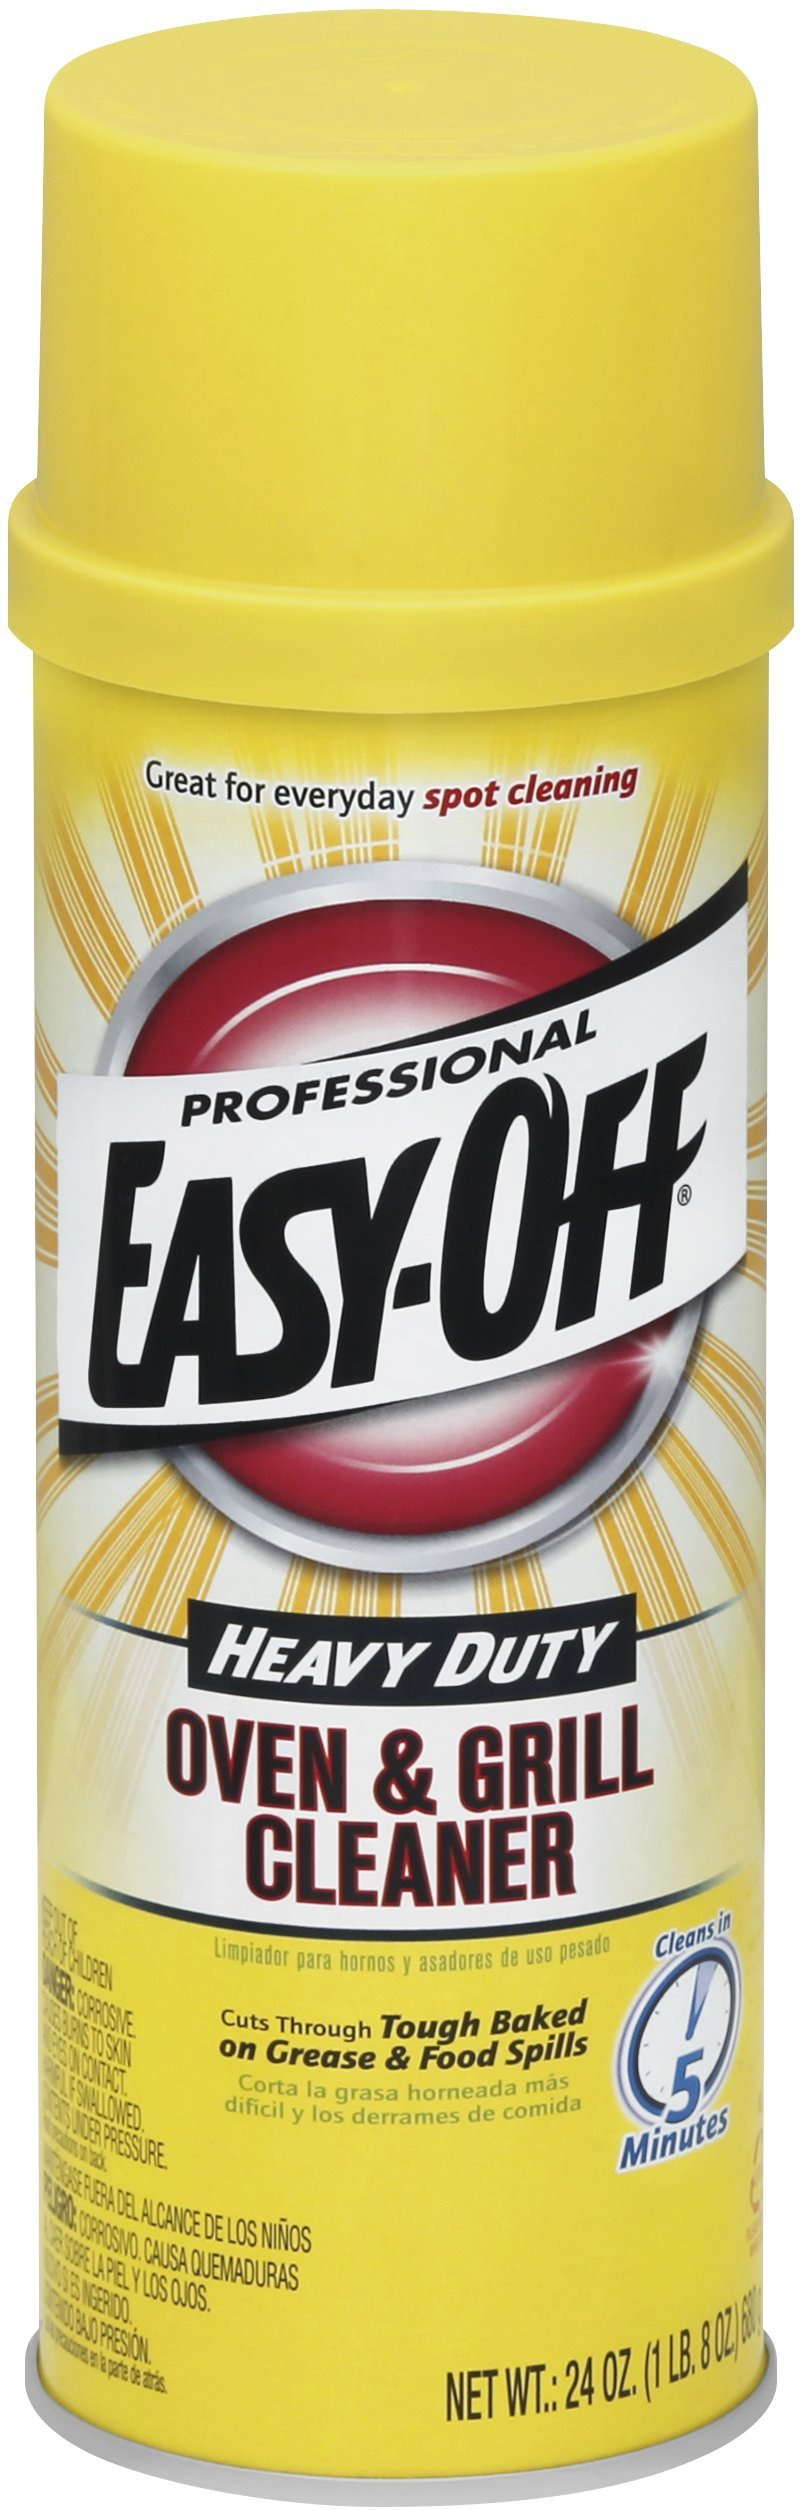 Easy Off Professional Oven & Grill Cleaner, 24 oz Can